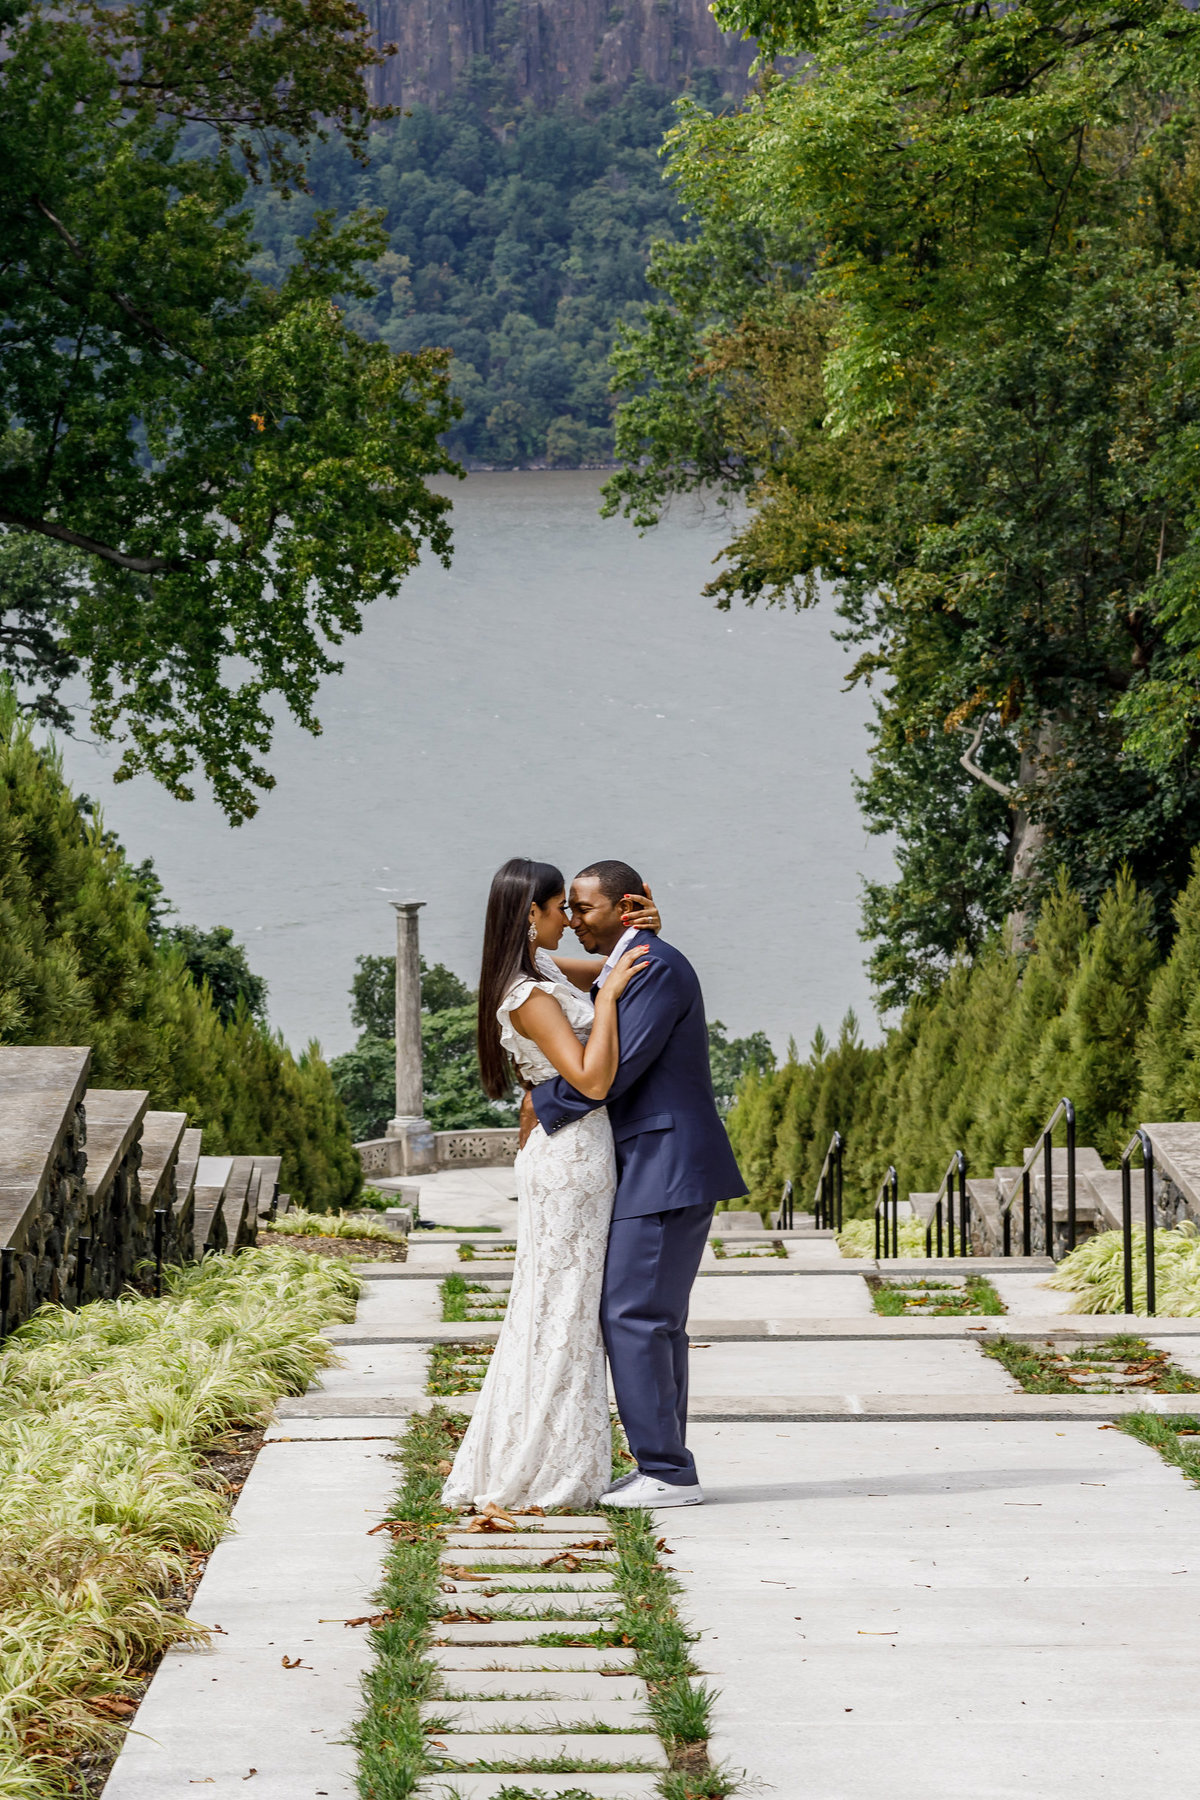 Untermyer_Gardens_Conservancy_EngagementSession_AmyAnaiz_016